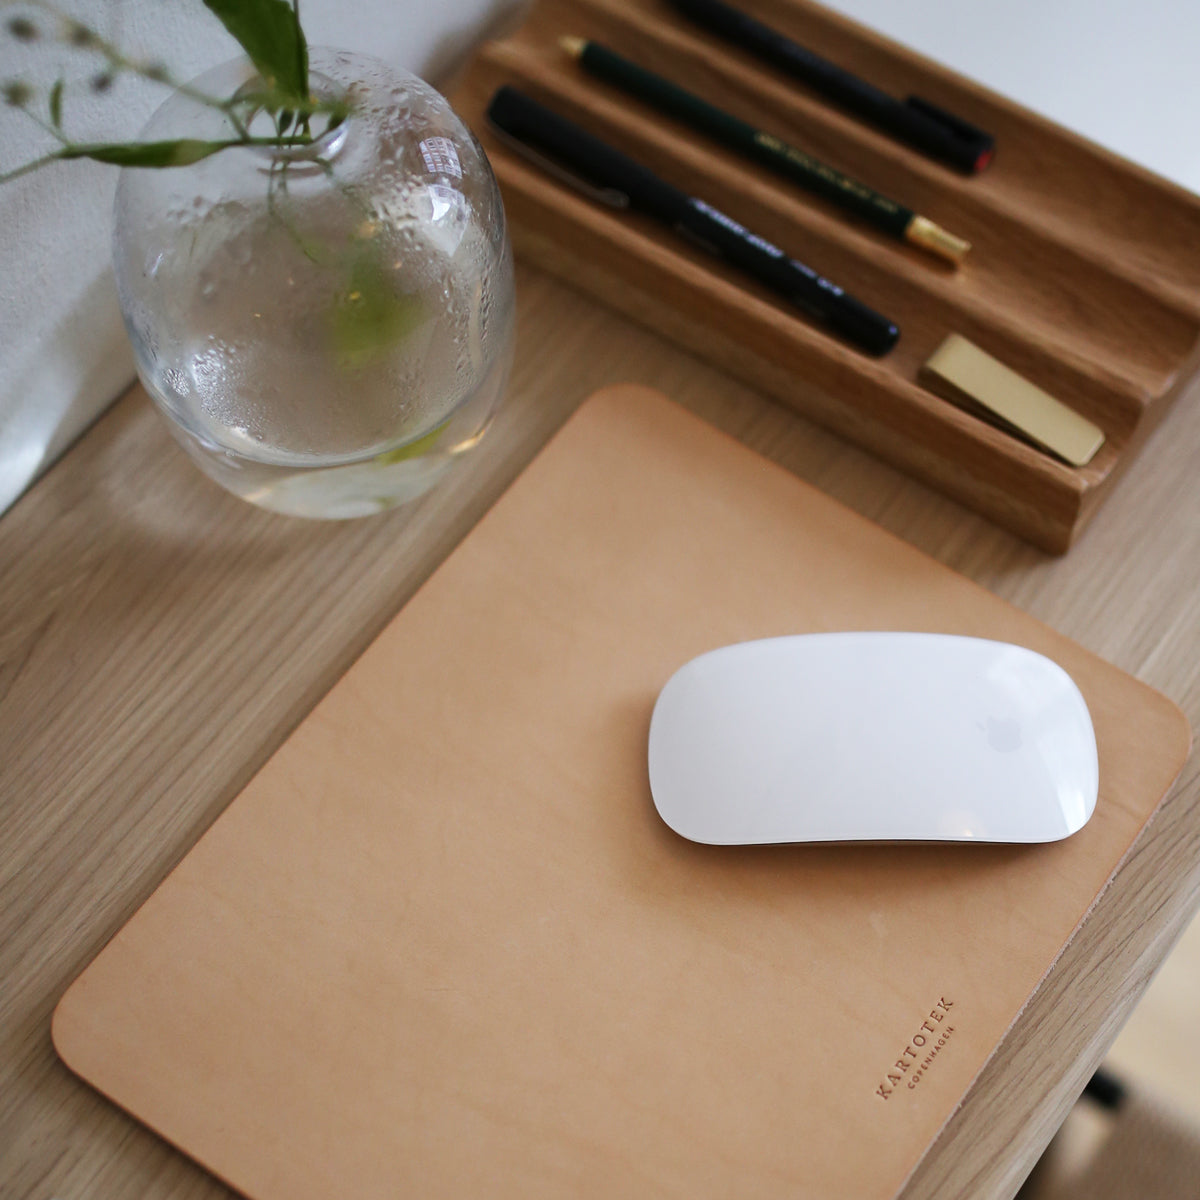 LEATHER MOUSE PAD (B GRADE)